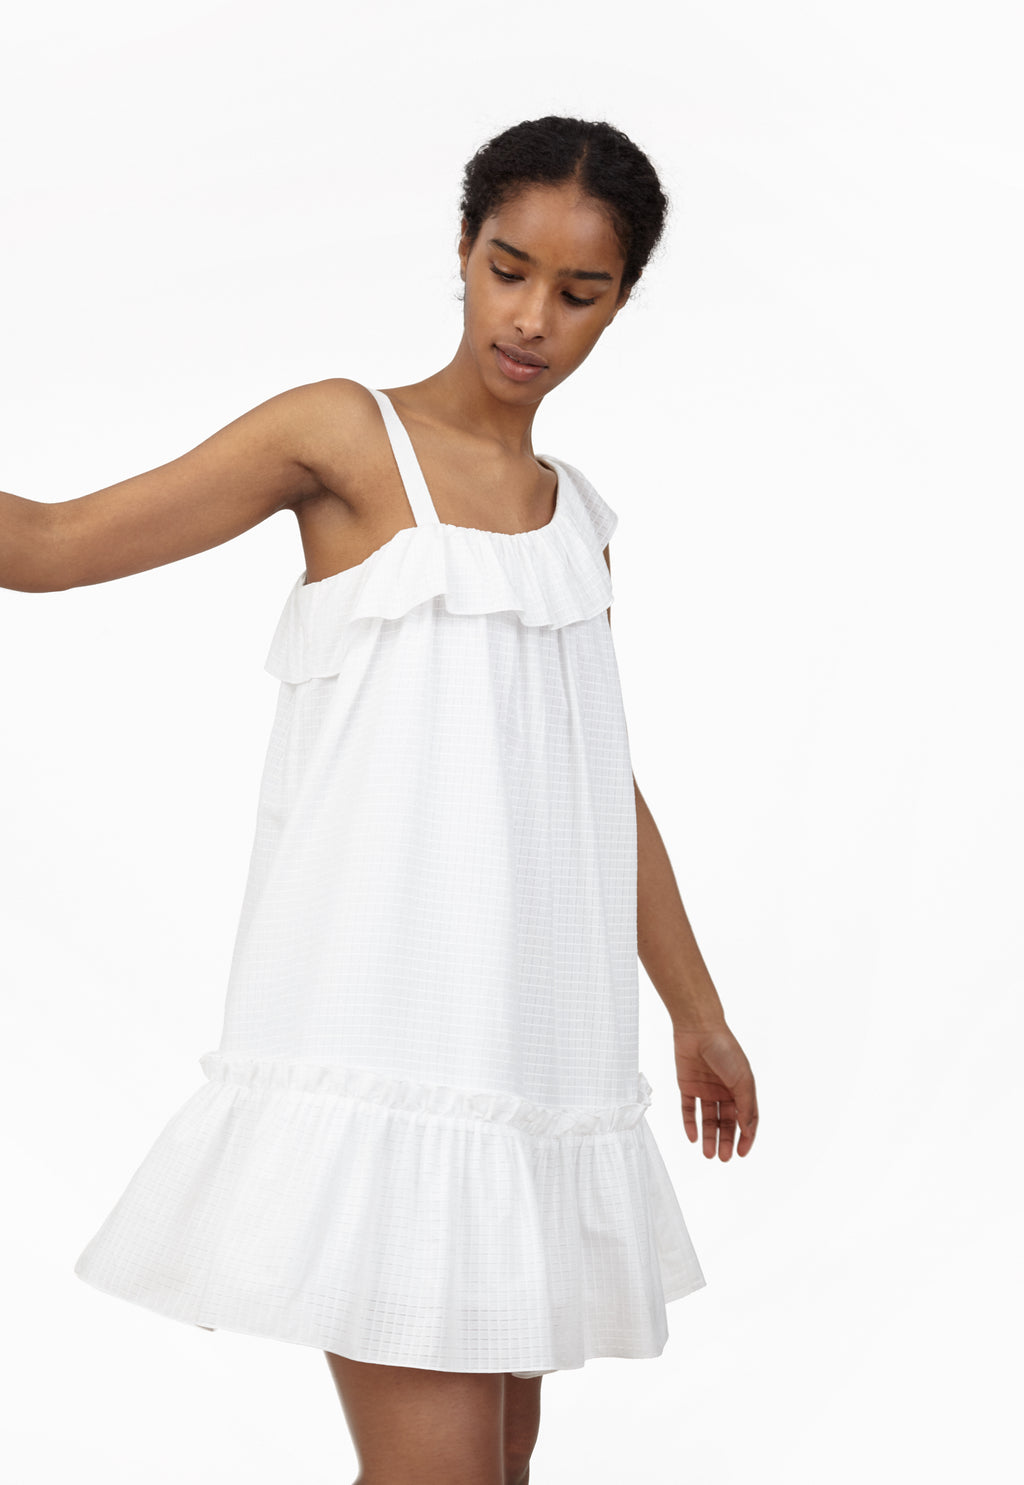 6 Shore Road Bay Breeze Dress Women's White Dress in XS, S, M, L - Summer 2018 Collection